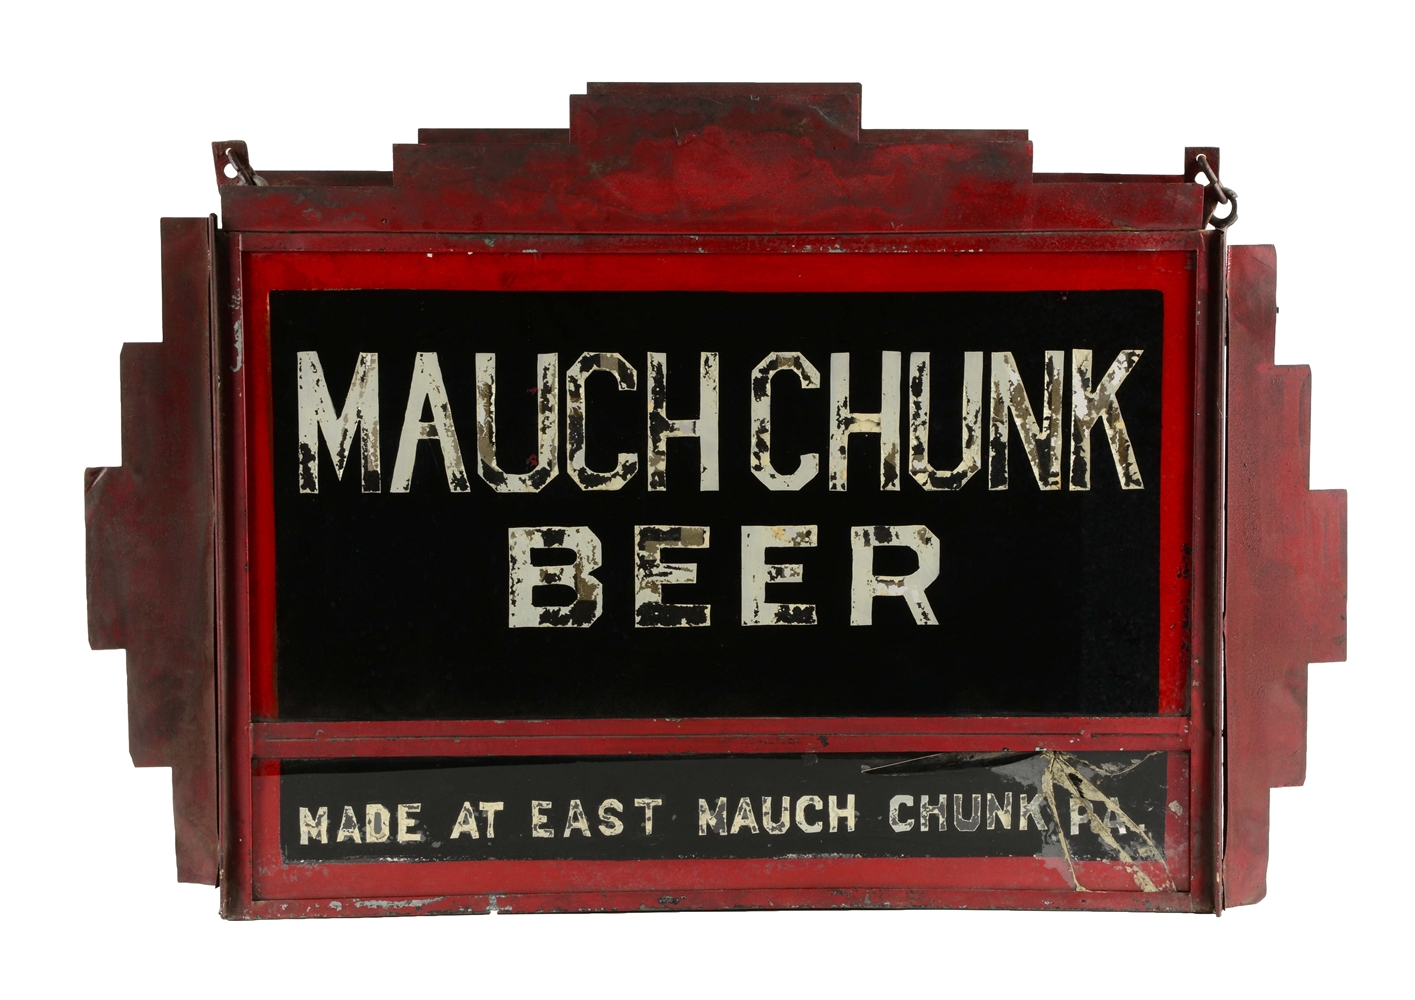 Mauch Chunk Beer Reverse Glass Light Up Sign.